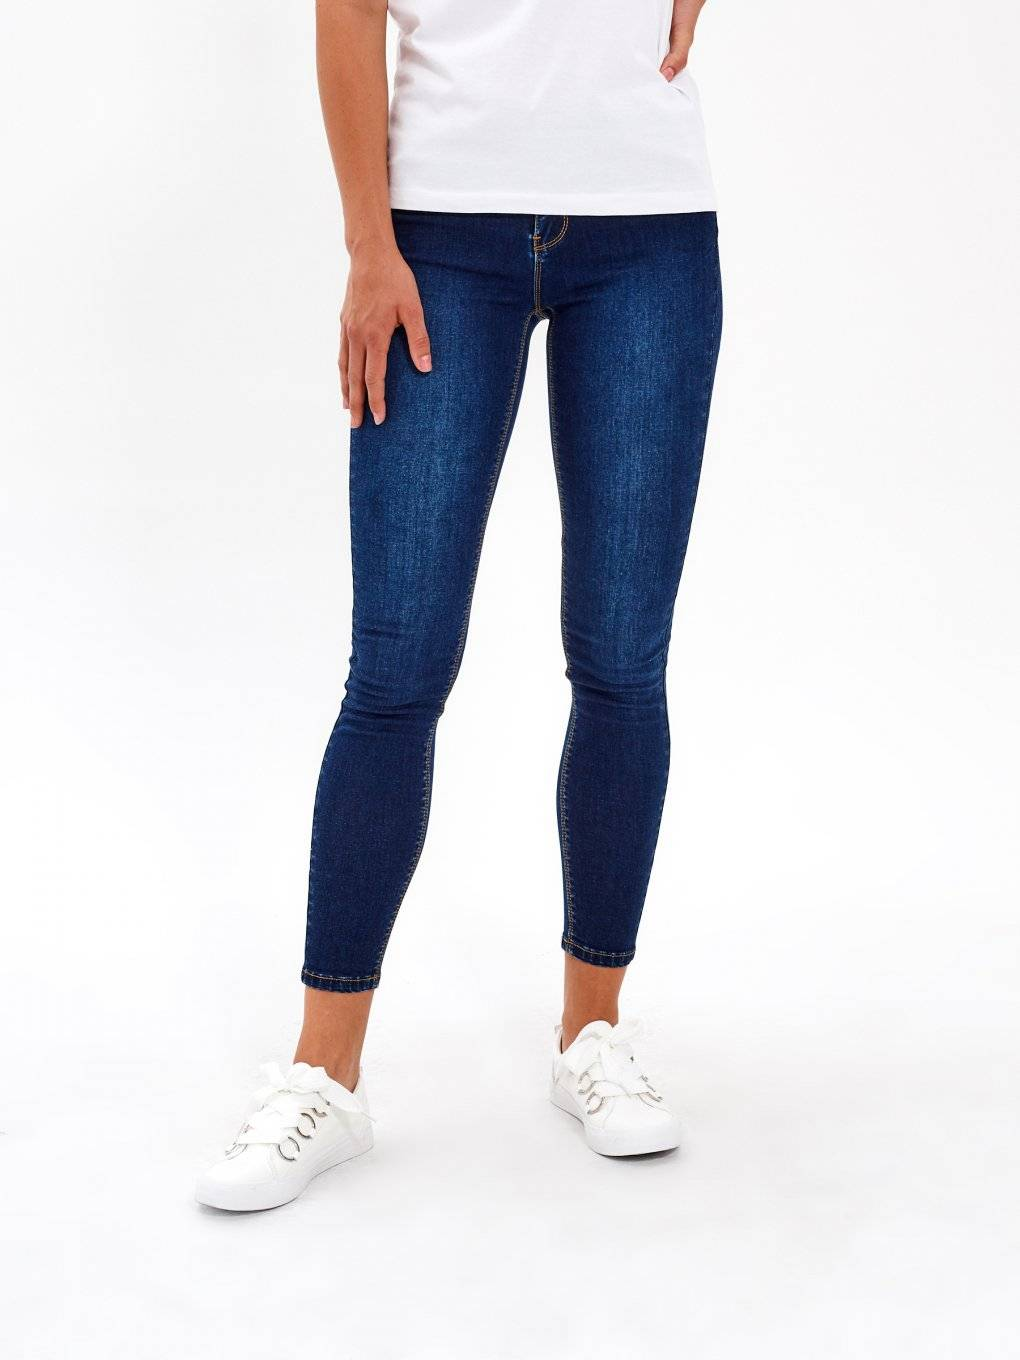 BASIC SKINNY JEANS IN DARK BLUE WASH